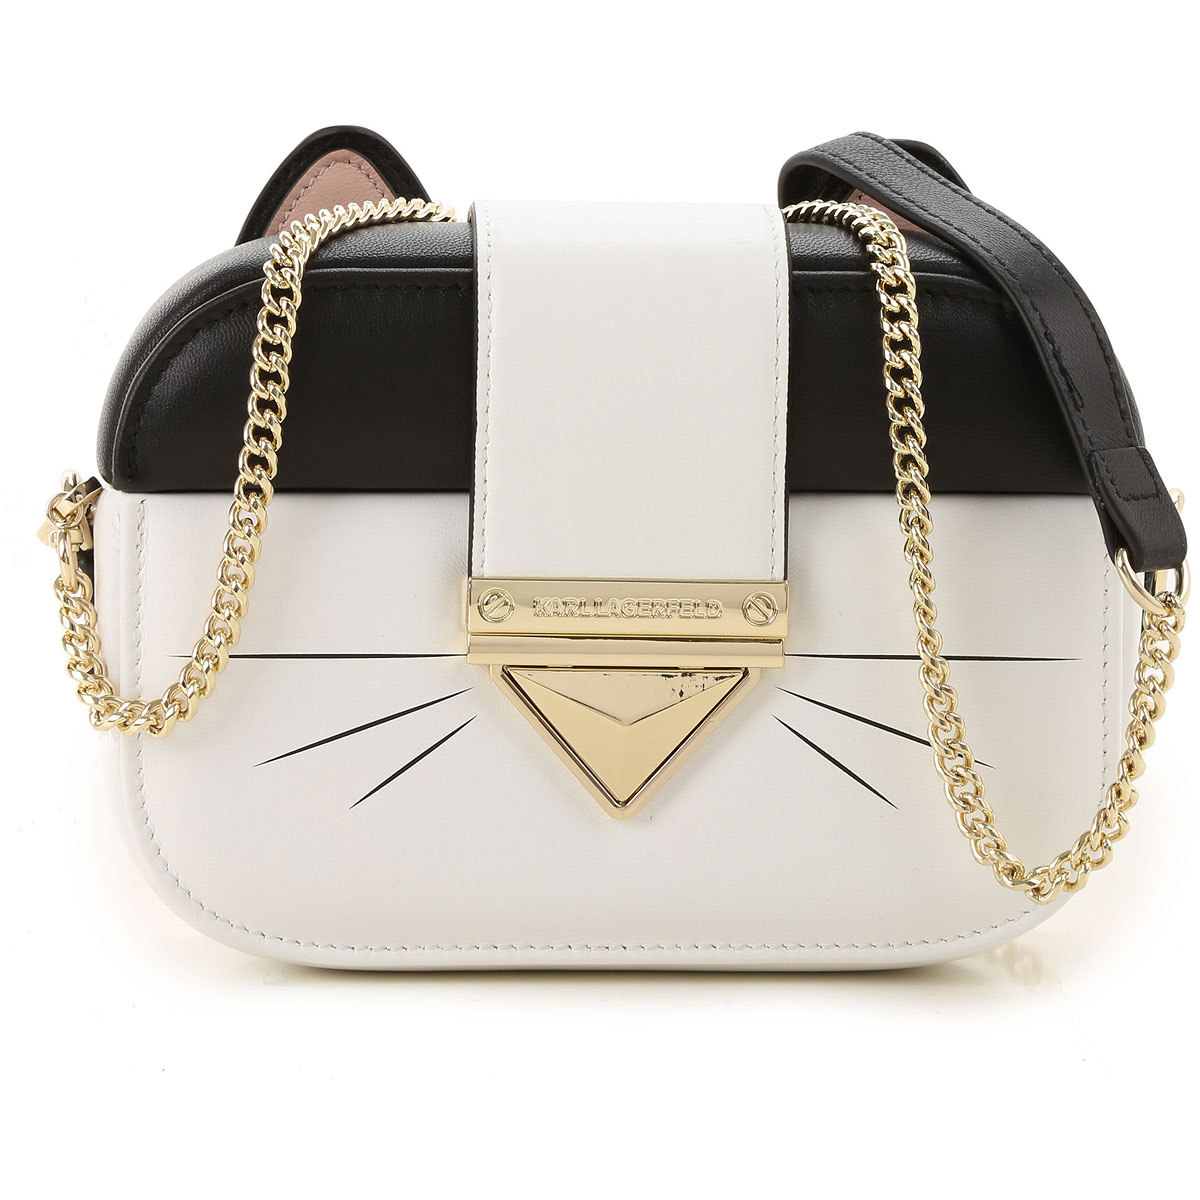 Karl Lagerfeld Clutch Bag On Sale, White, Leather, 2019